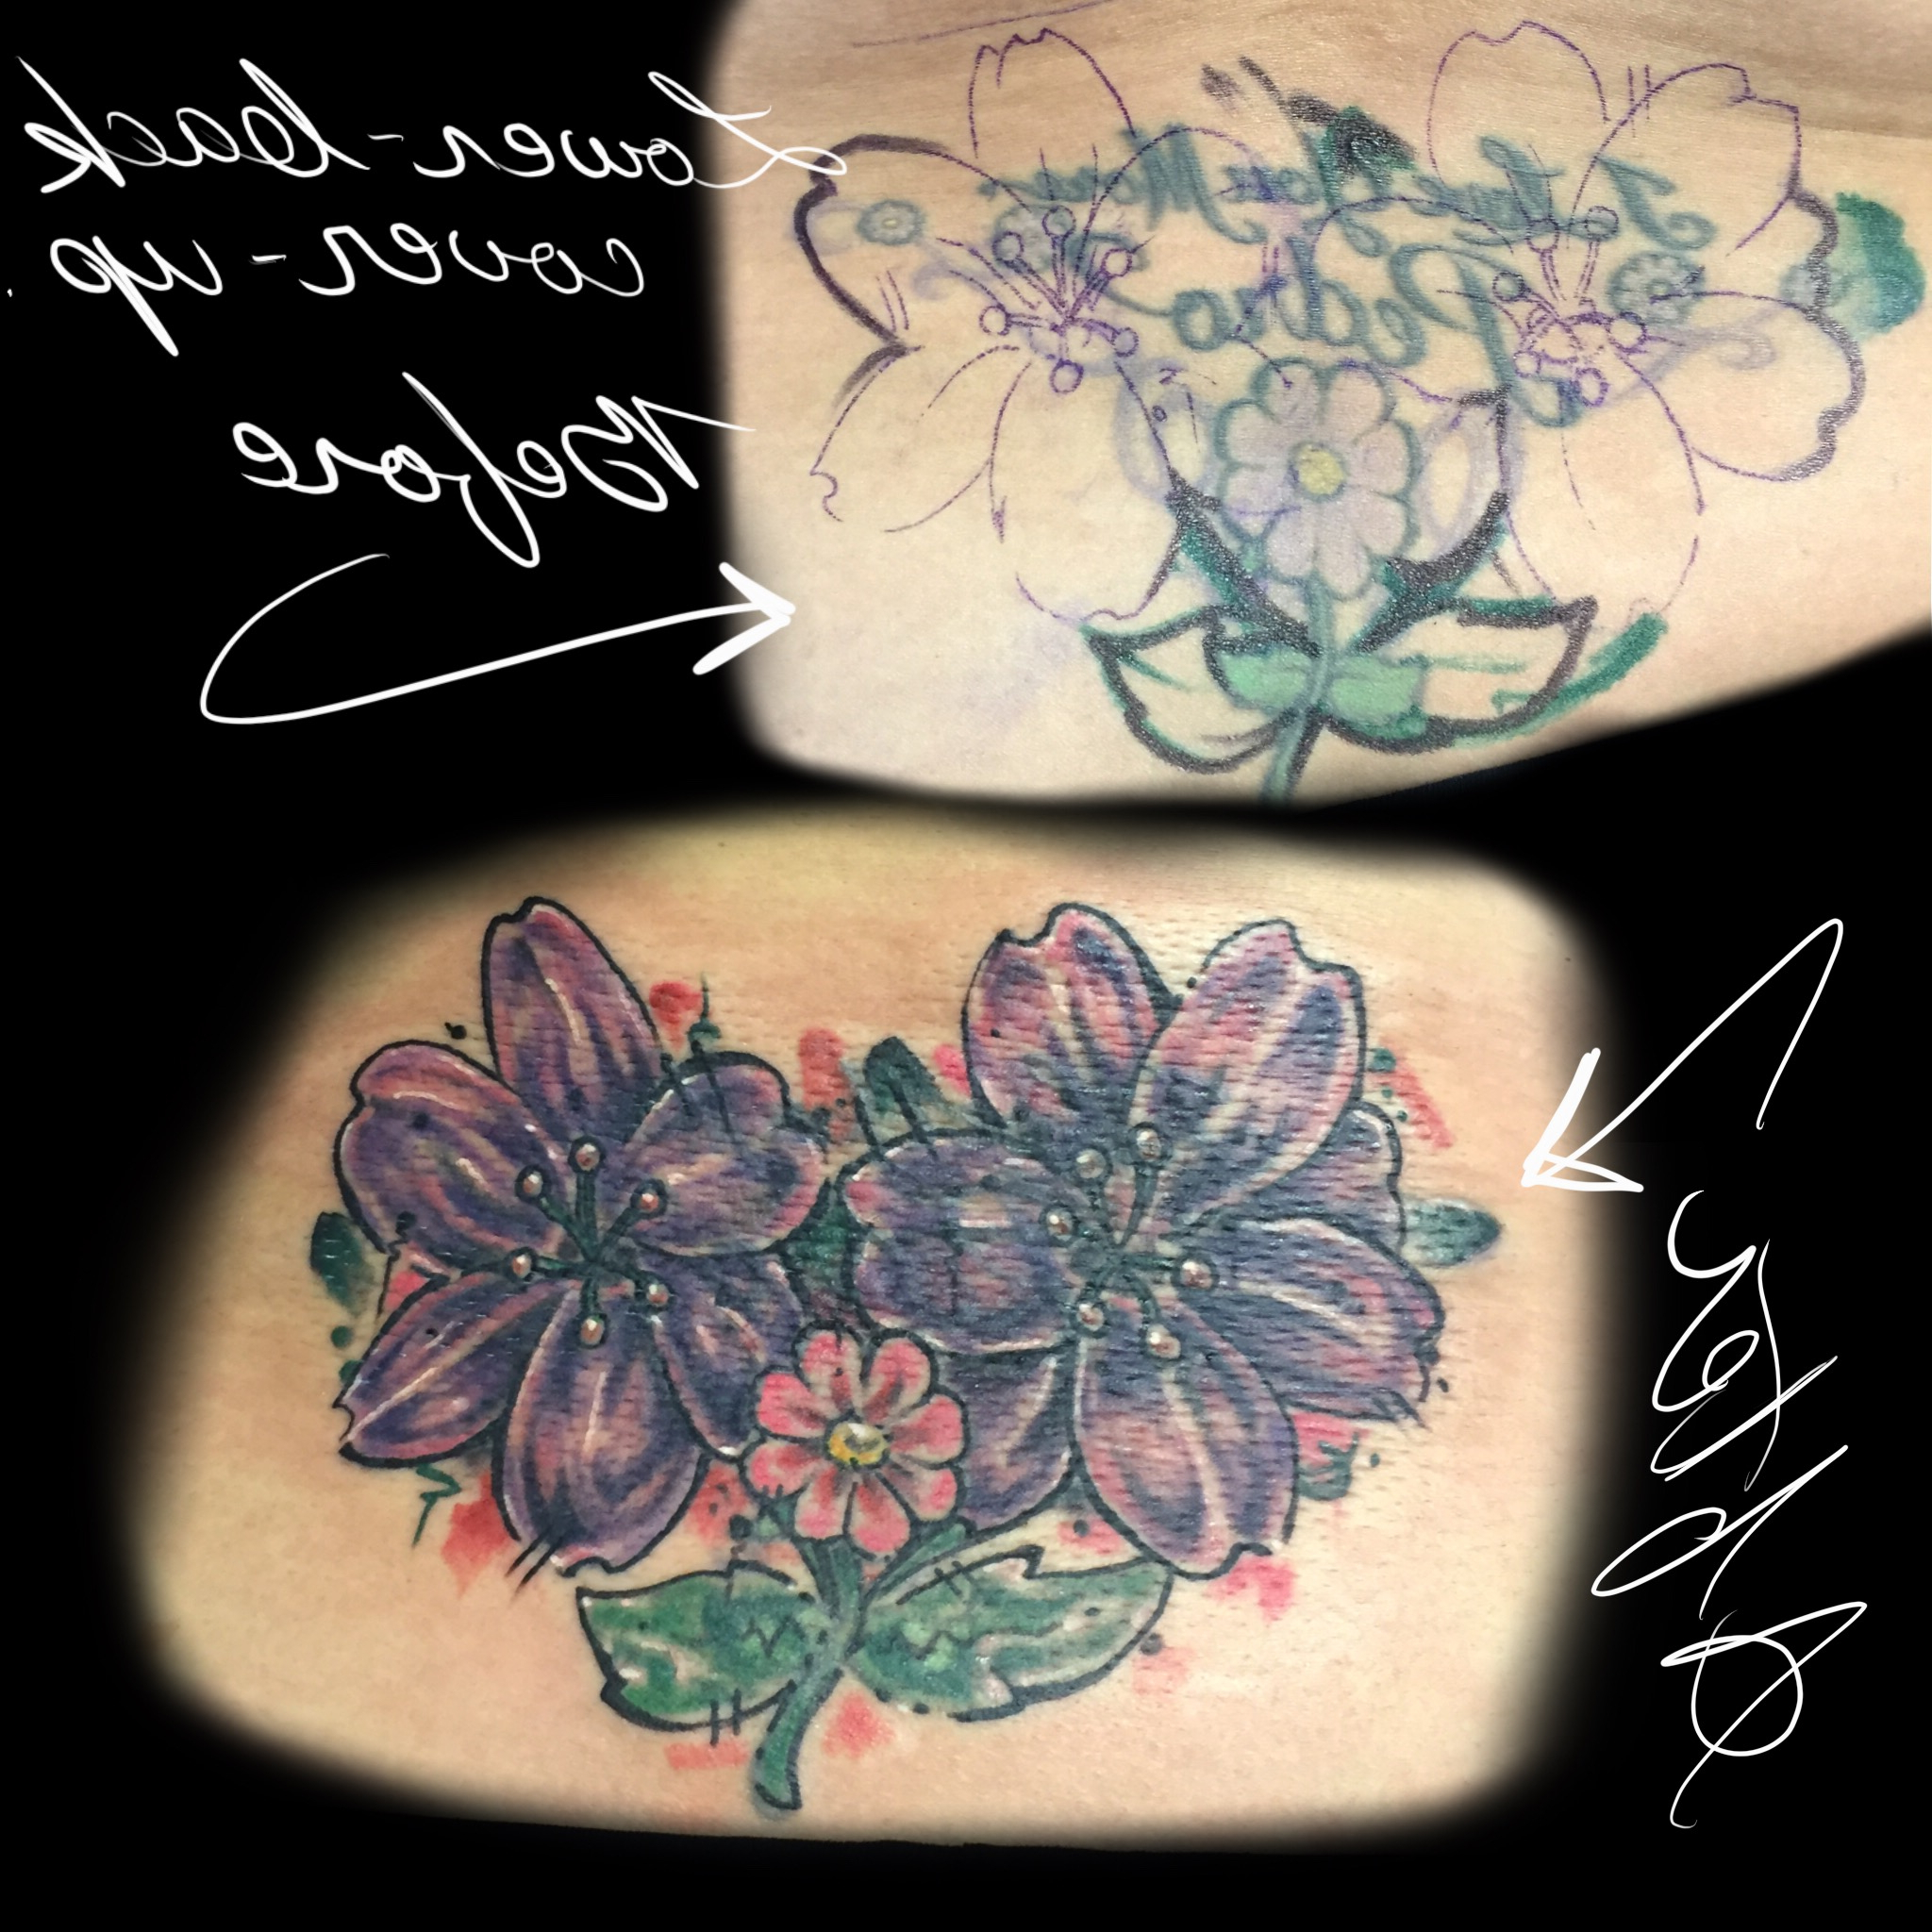 Tattoo Cover Up Lower Back Lower Back Cover-Up Tattoo – Michael Medina Art